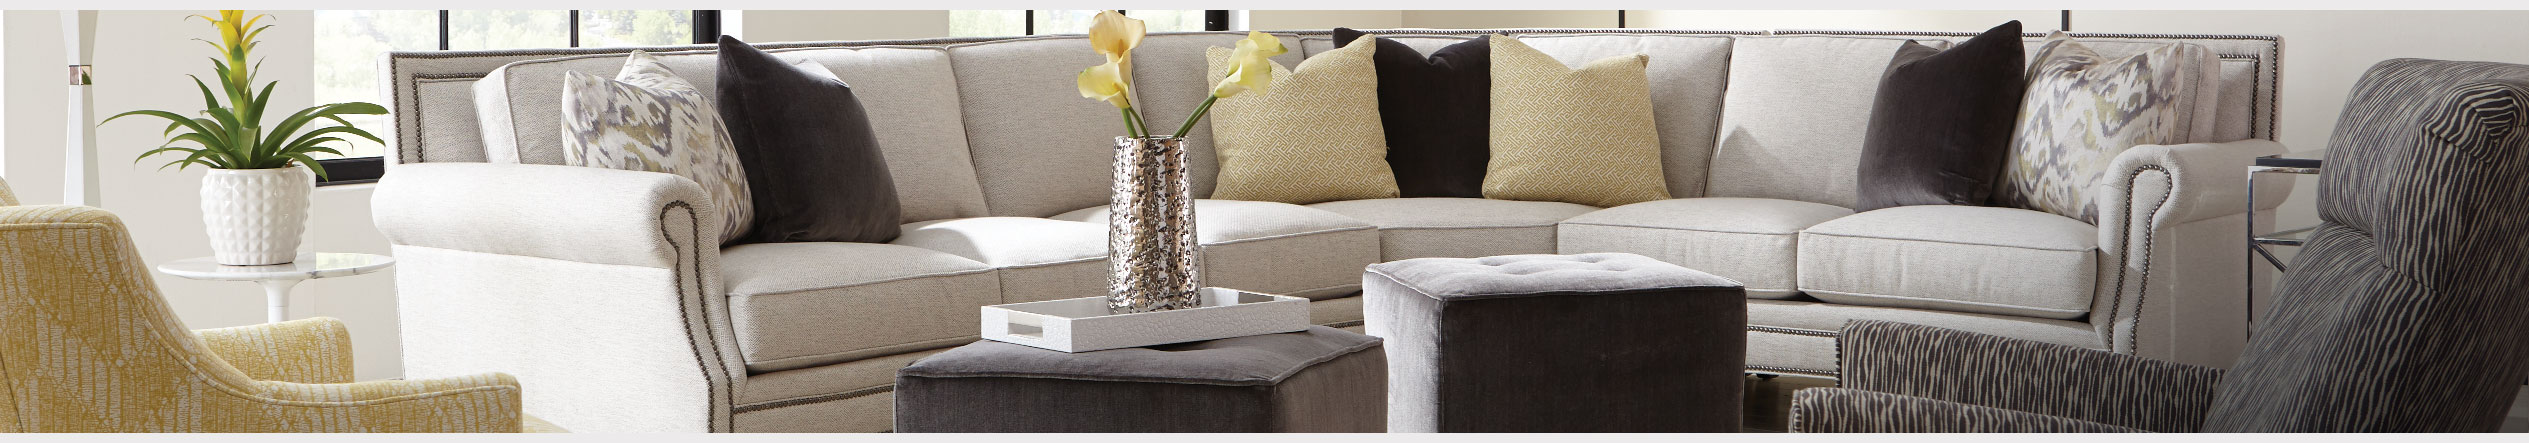 Maintain Your Investment at Jordan's Furniture stores in MA, NH and RI